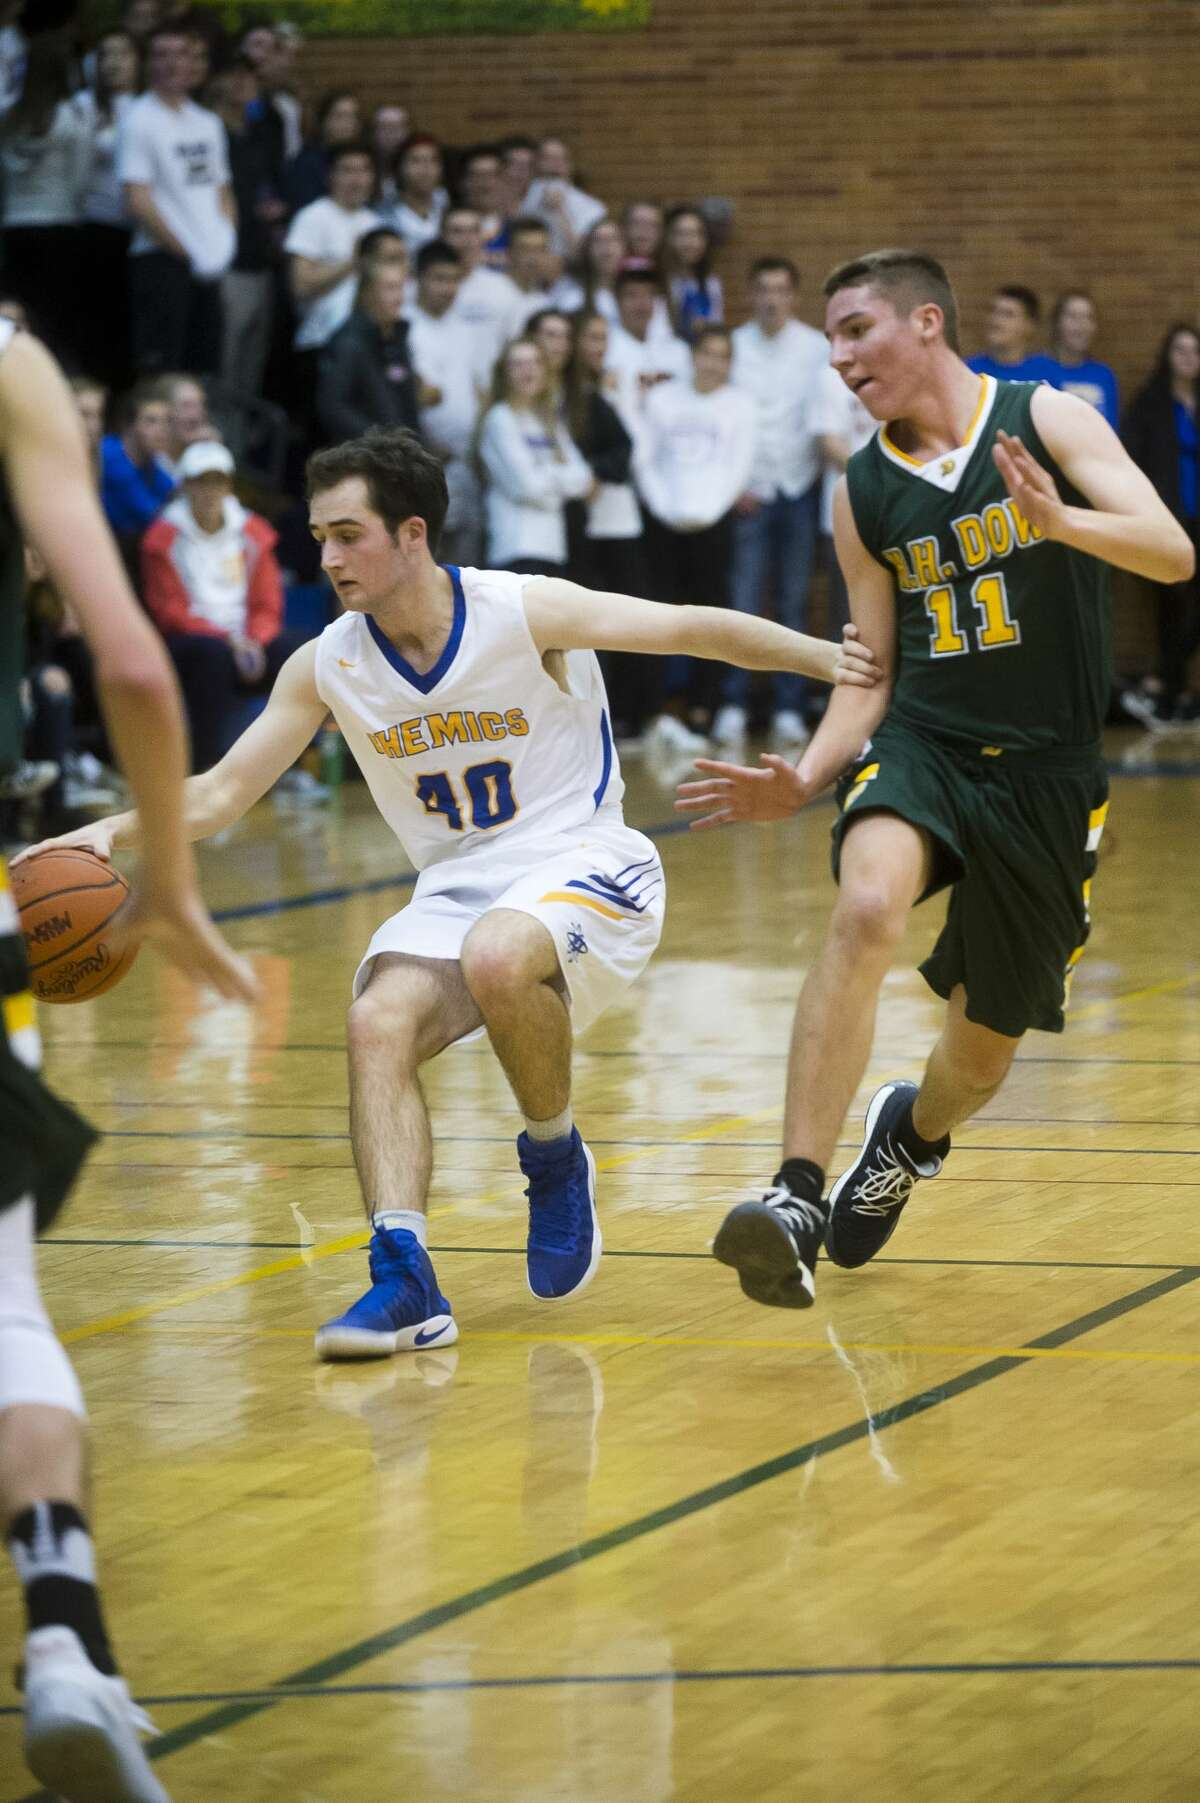 Midland senior Drew Gandy dribbles down the court during the Chemics' game against Dow on Tuesday, Dec. 19, 2017 at Midland High School. (Katy Kildee/kkildee@mdn.net)